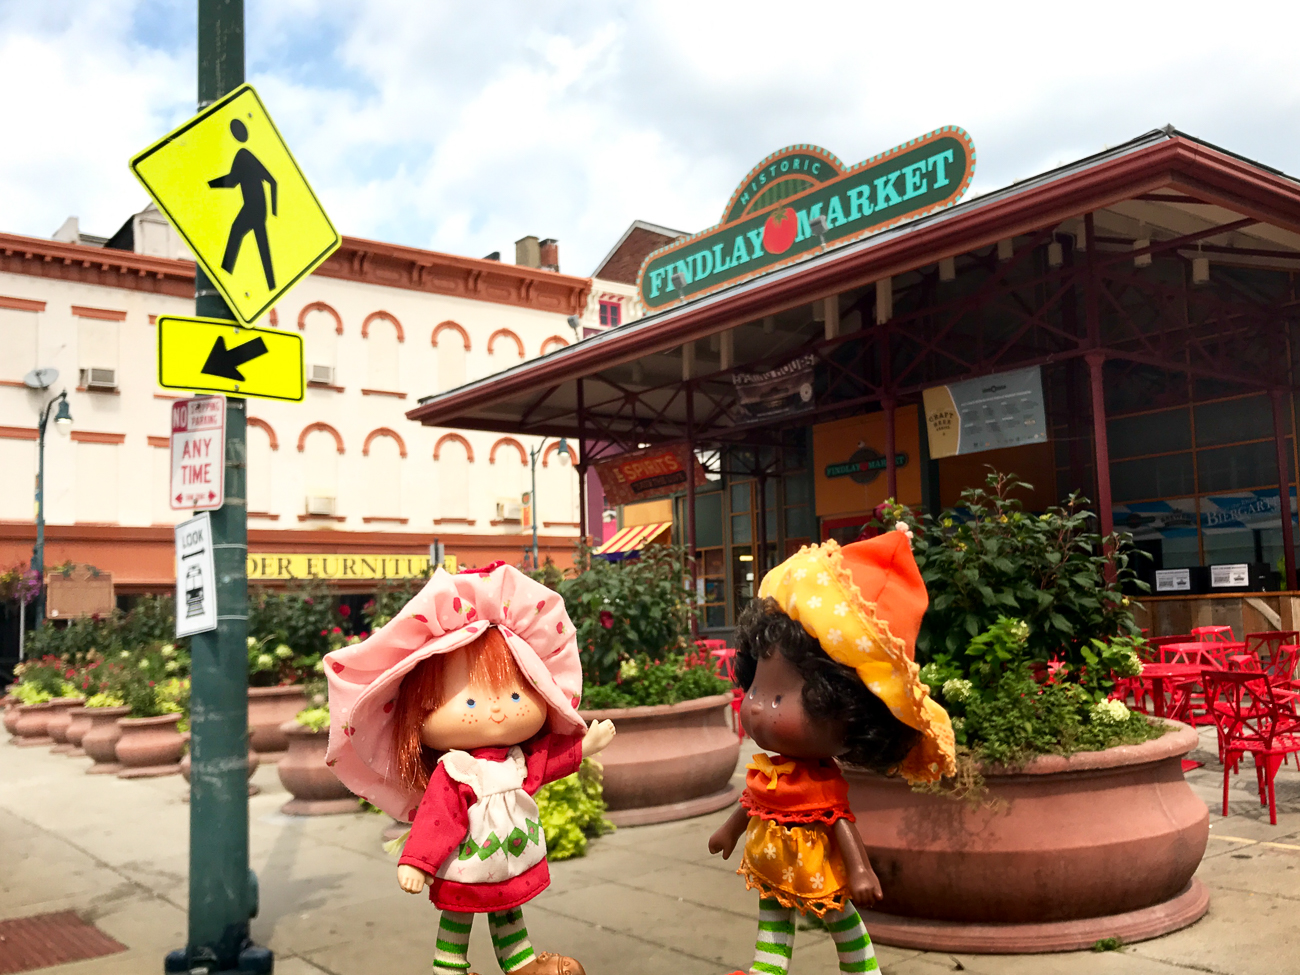 Strawberry Market / Kristian Geer uses forced perspective photography (not Photoshop) to inject surreal elements–that is, toys–into every day scenes to alter their significance. Pulling from an infinite well of imagination, his creativity paints the Queen City as a technicolor dreamscape for a cast of fictional characters interacting with our real world. / Image: Kristian Geer // Published: 8.29.18